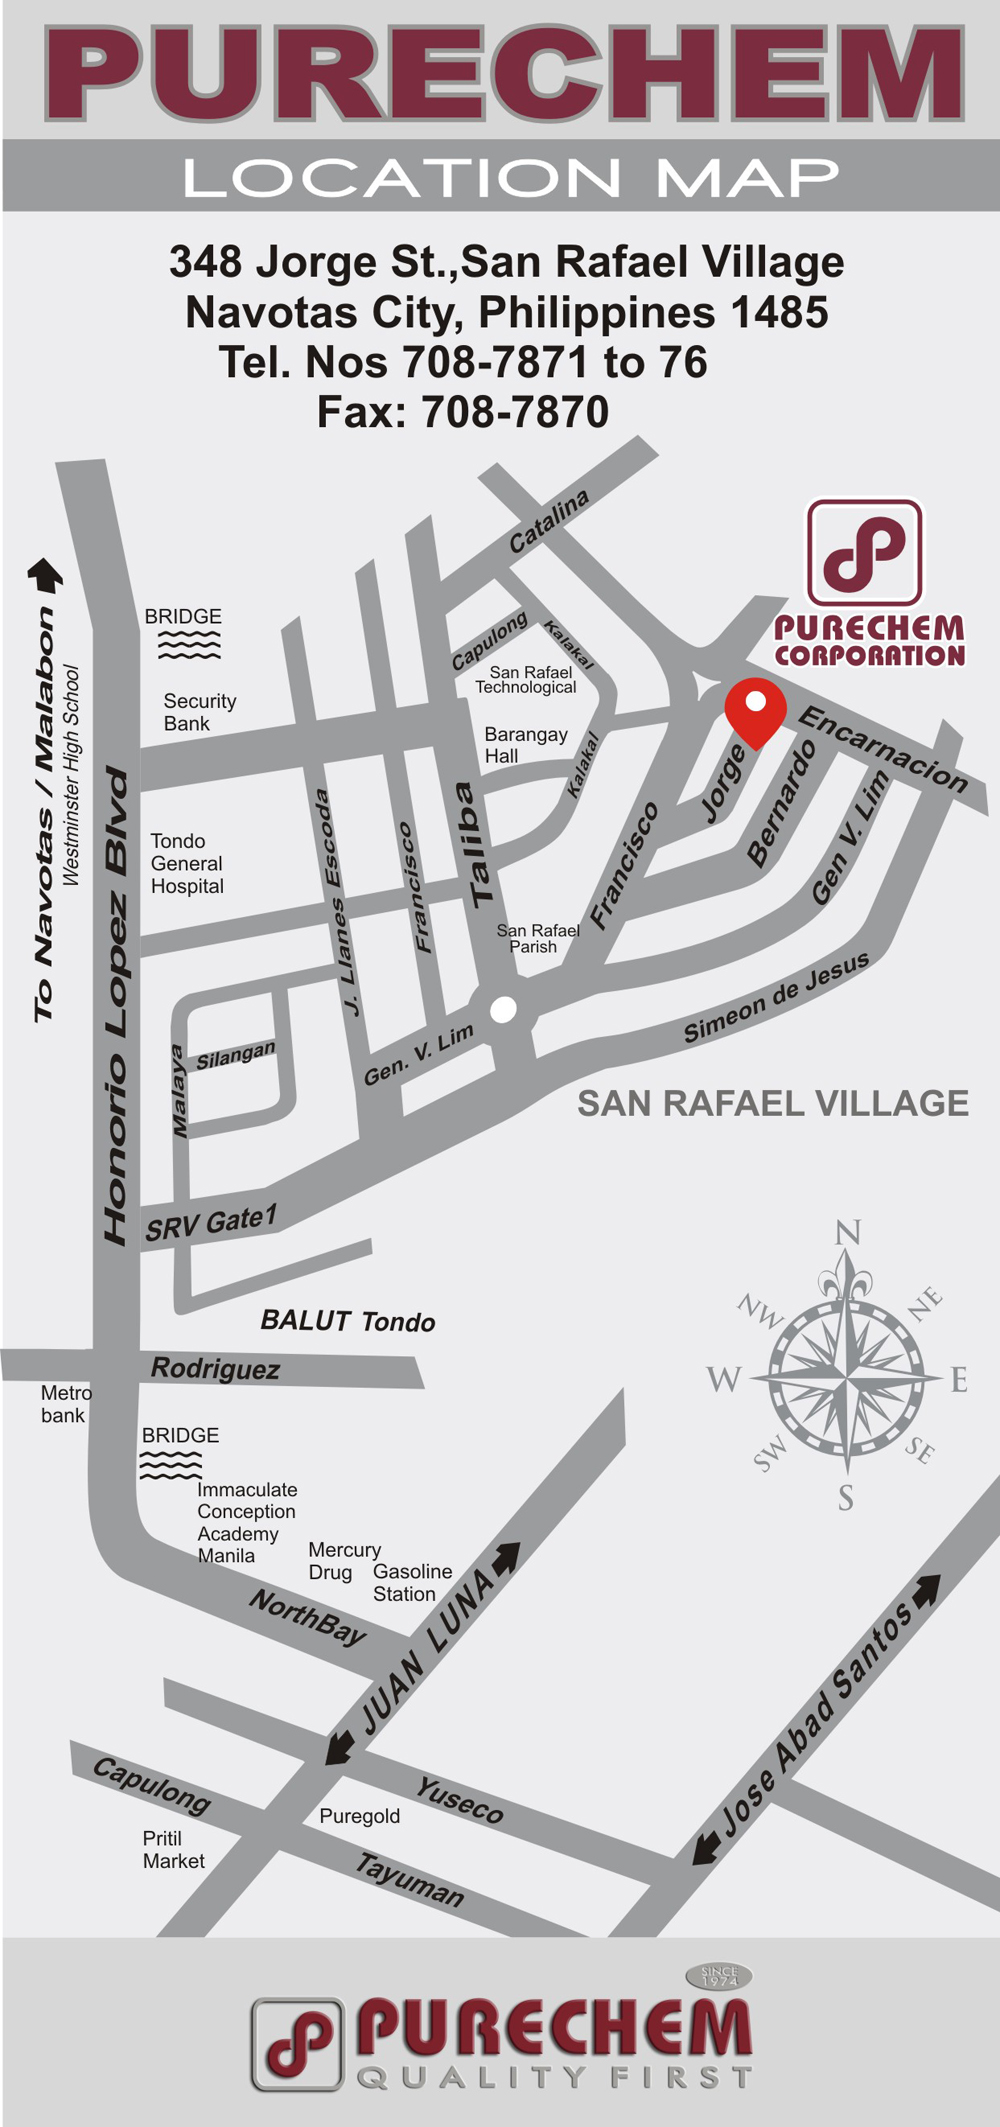 Purechem location map